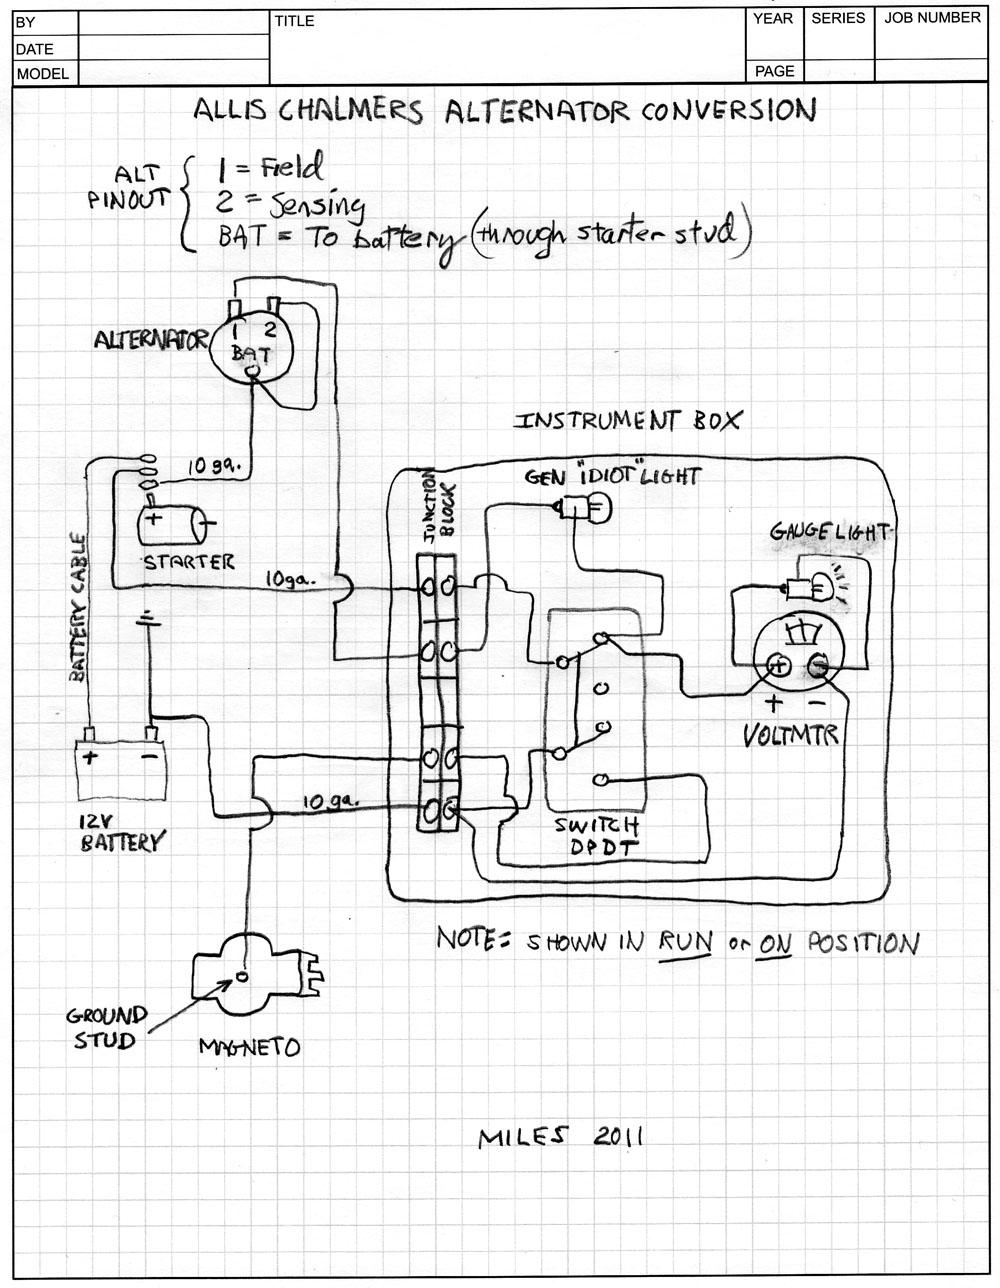 ACshematicjpg squid's fab shop allis chalmers b alternator conversion cj3a wiring diagram at gsmportal.co